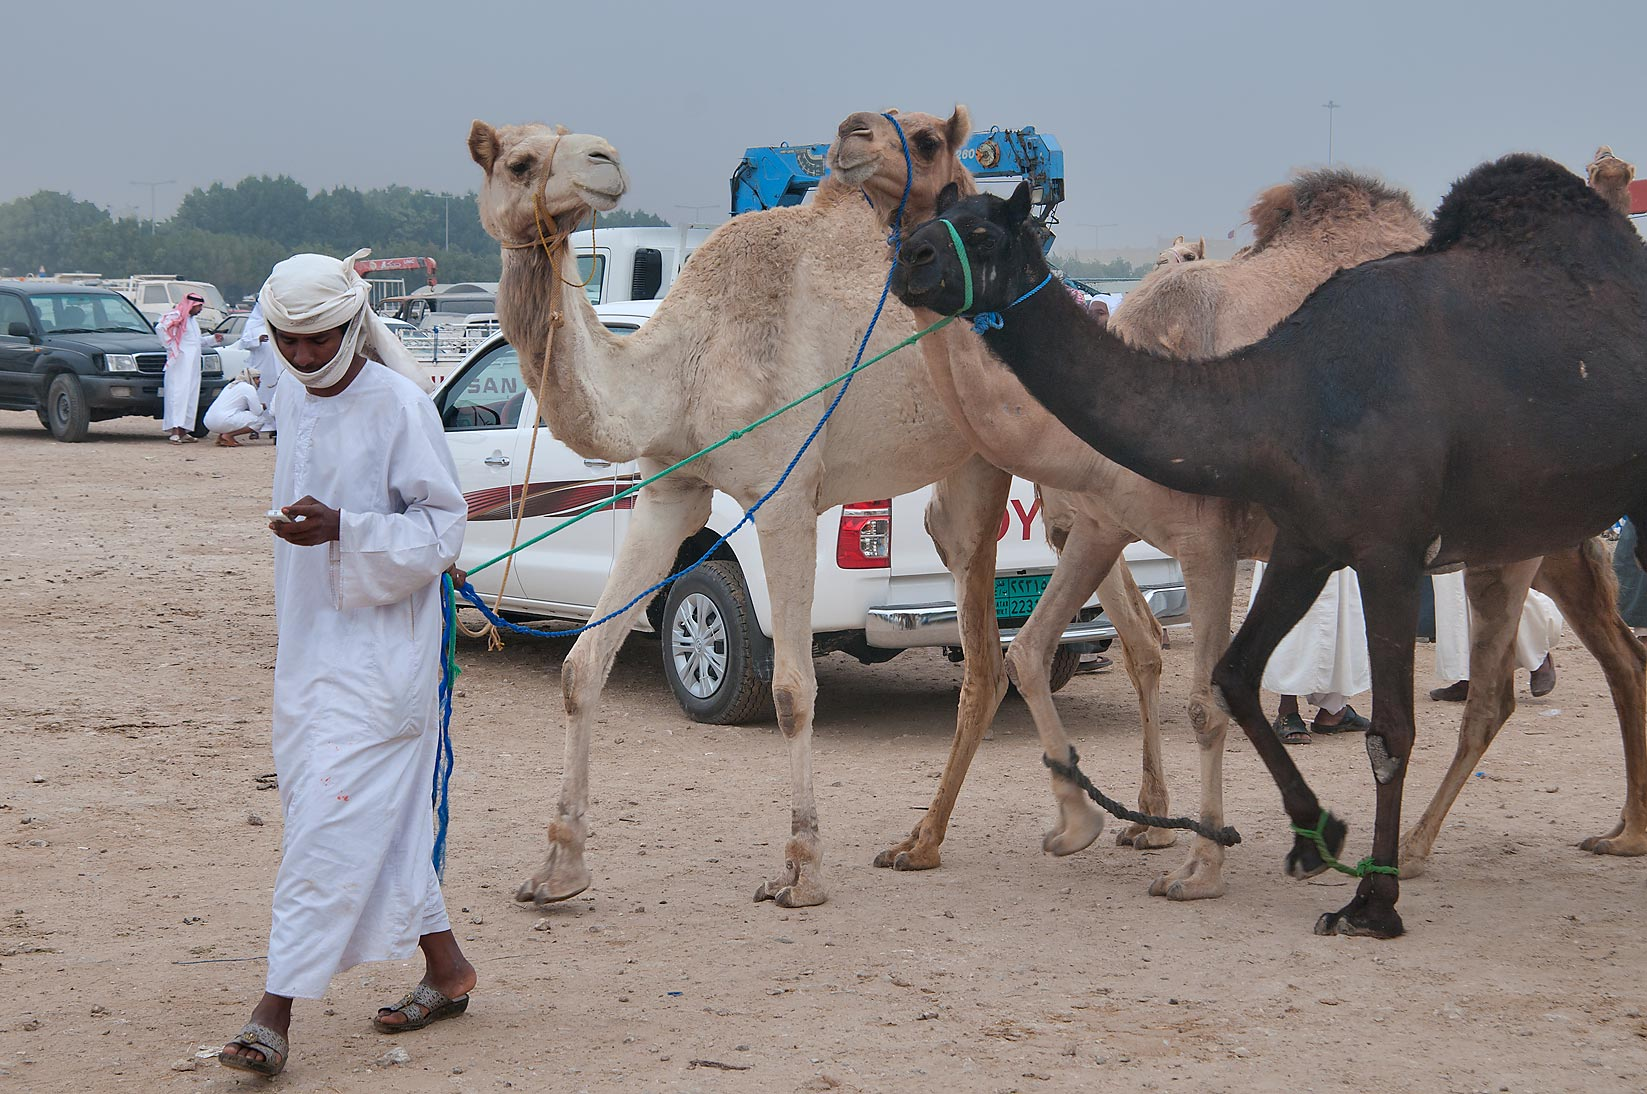 Brown and black camels in Camel Market (Souq), racing section. Doha, Qatar